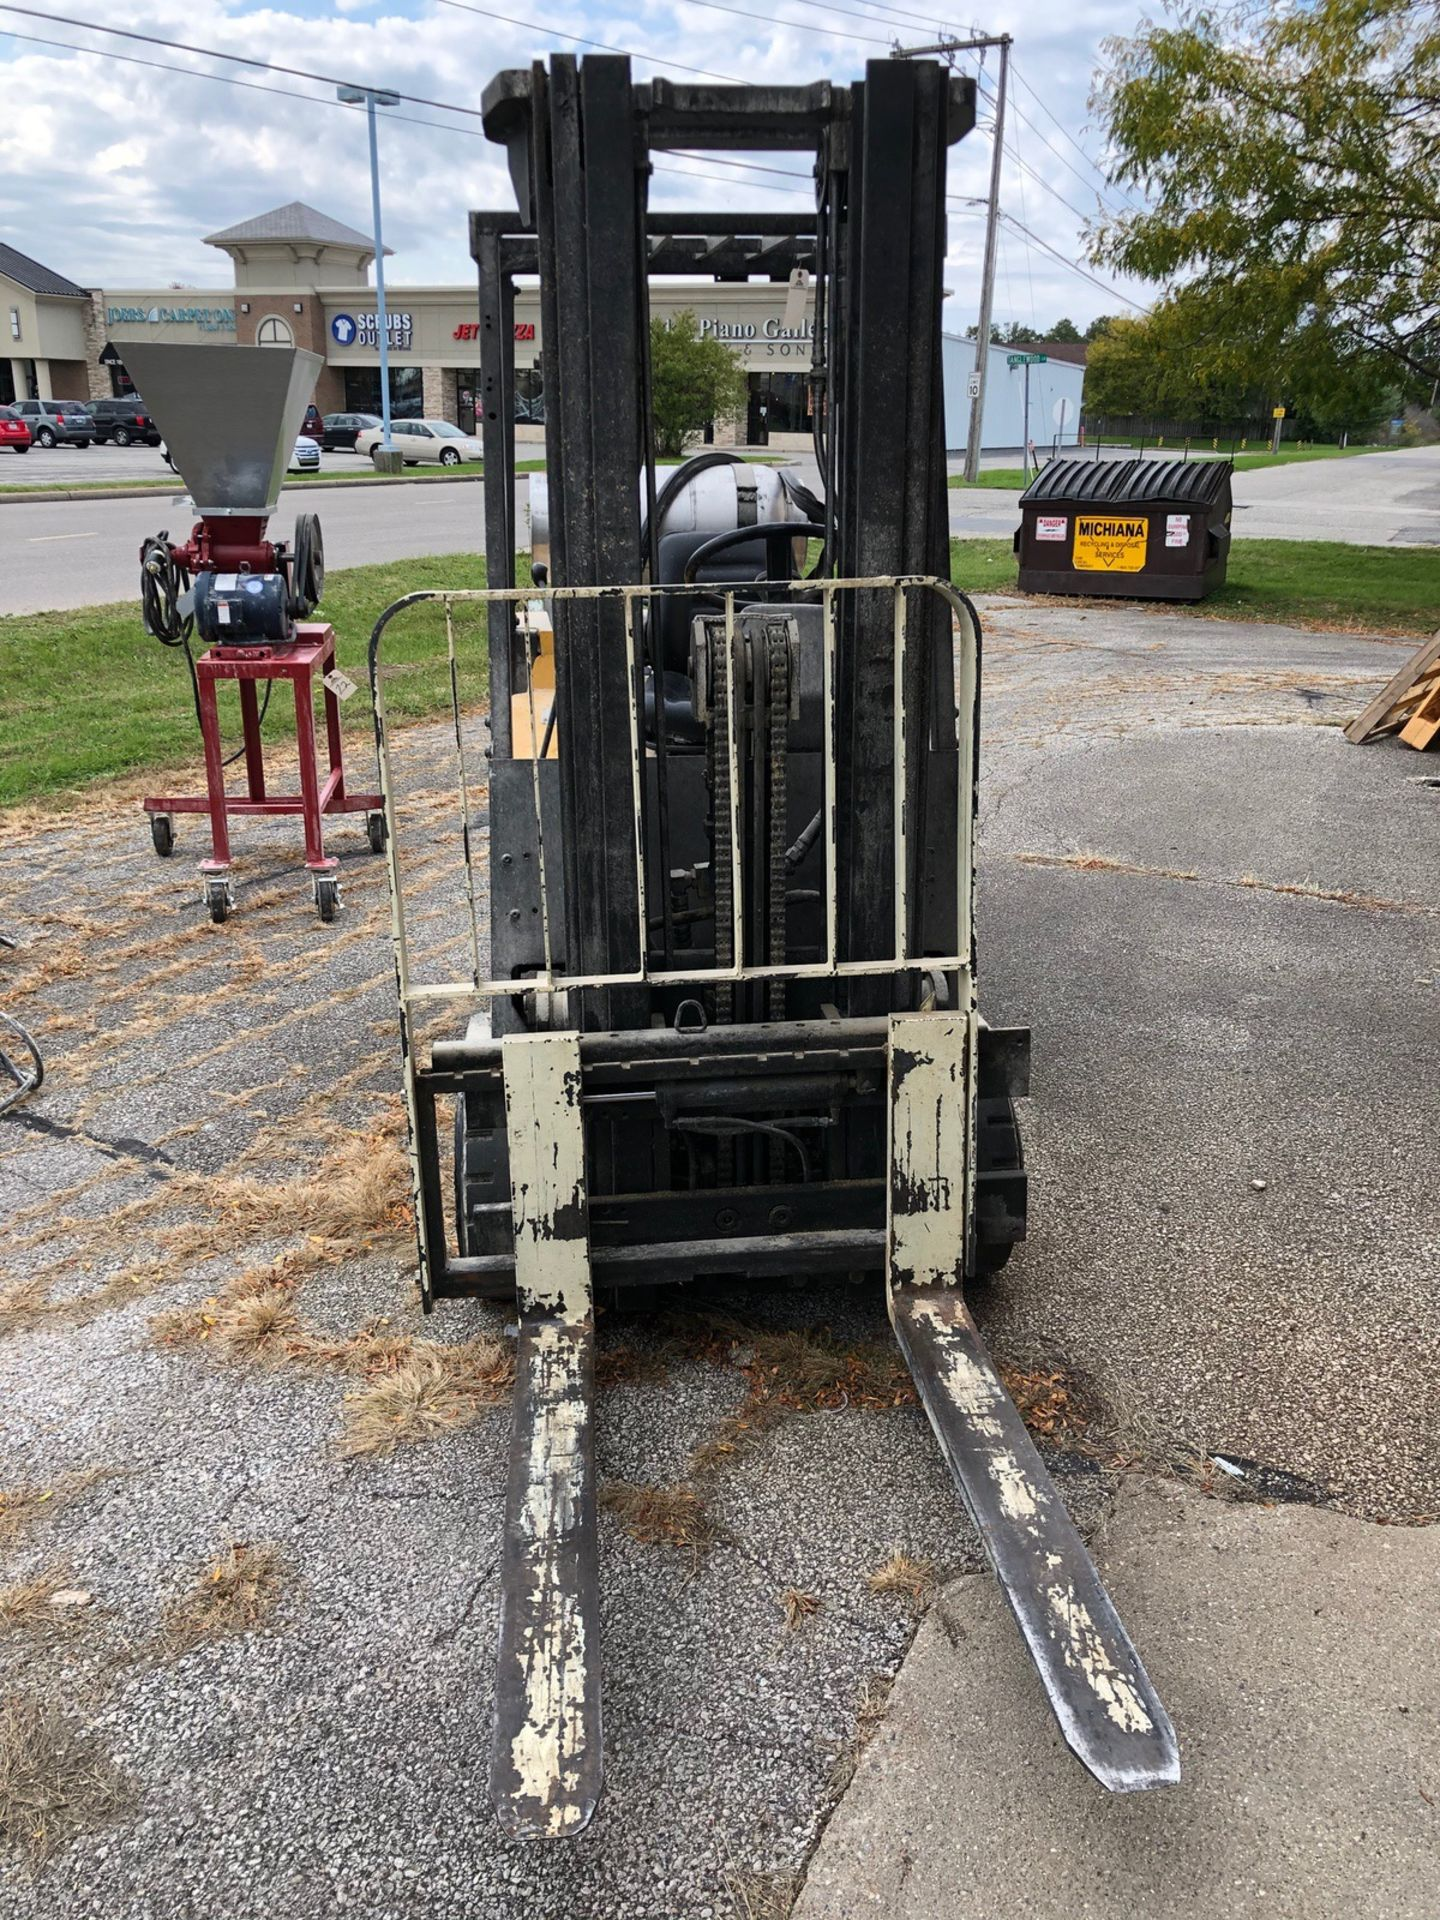 Lot 75 - Yale Fork Lift, 5000 LB Max Capacity, LP, Model GLC050DENUAE0 (Delay Delivery) | Rig Fee: $150